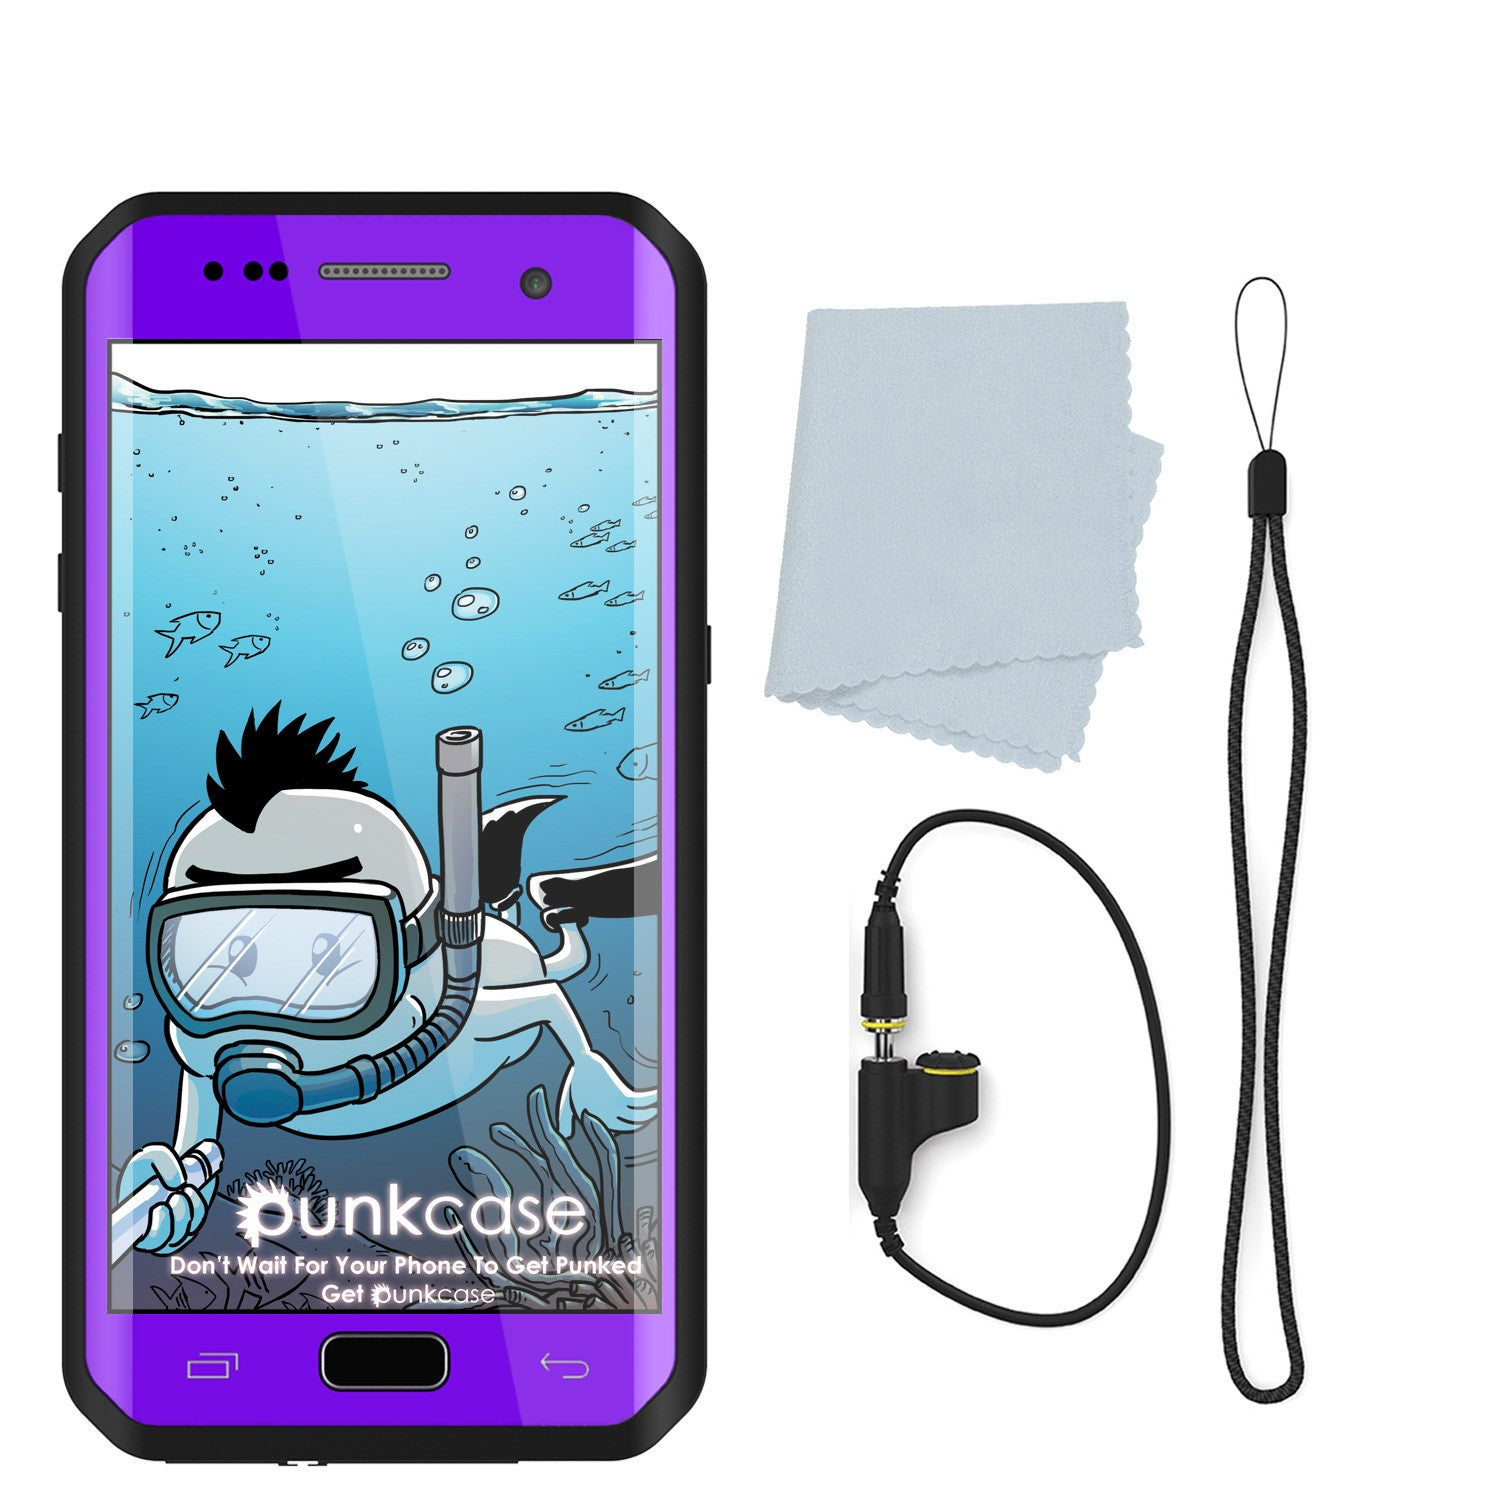 Galaxy S7 EDGE Waterproof Case PunkCase StudStar Purple Thin 6.6ft Underwater IP68 Shock/Snow Proof